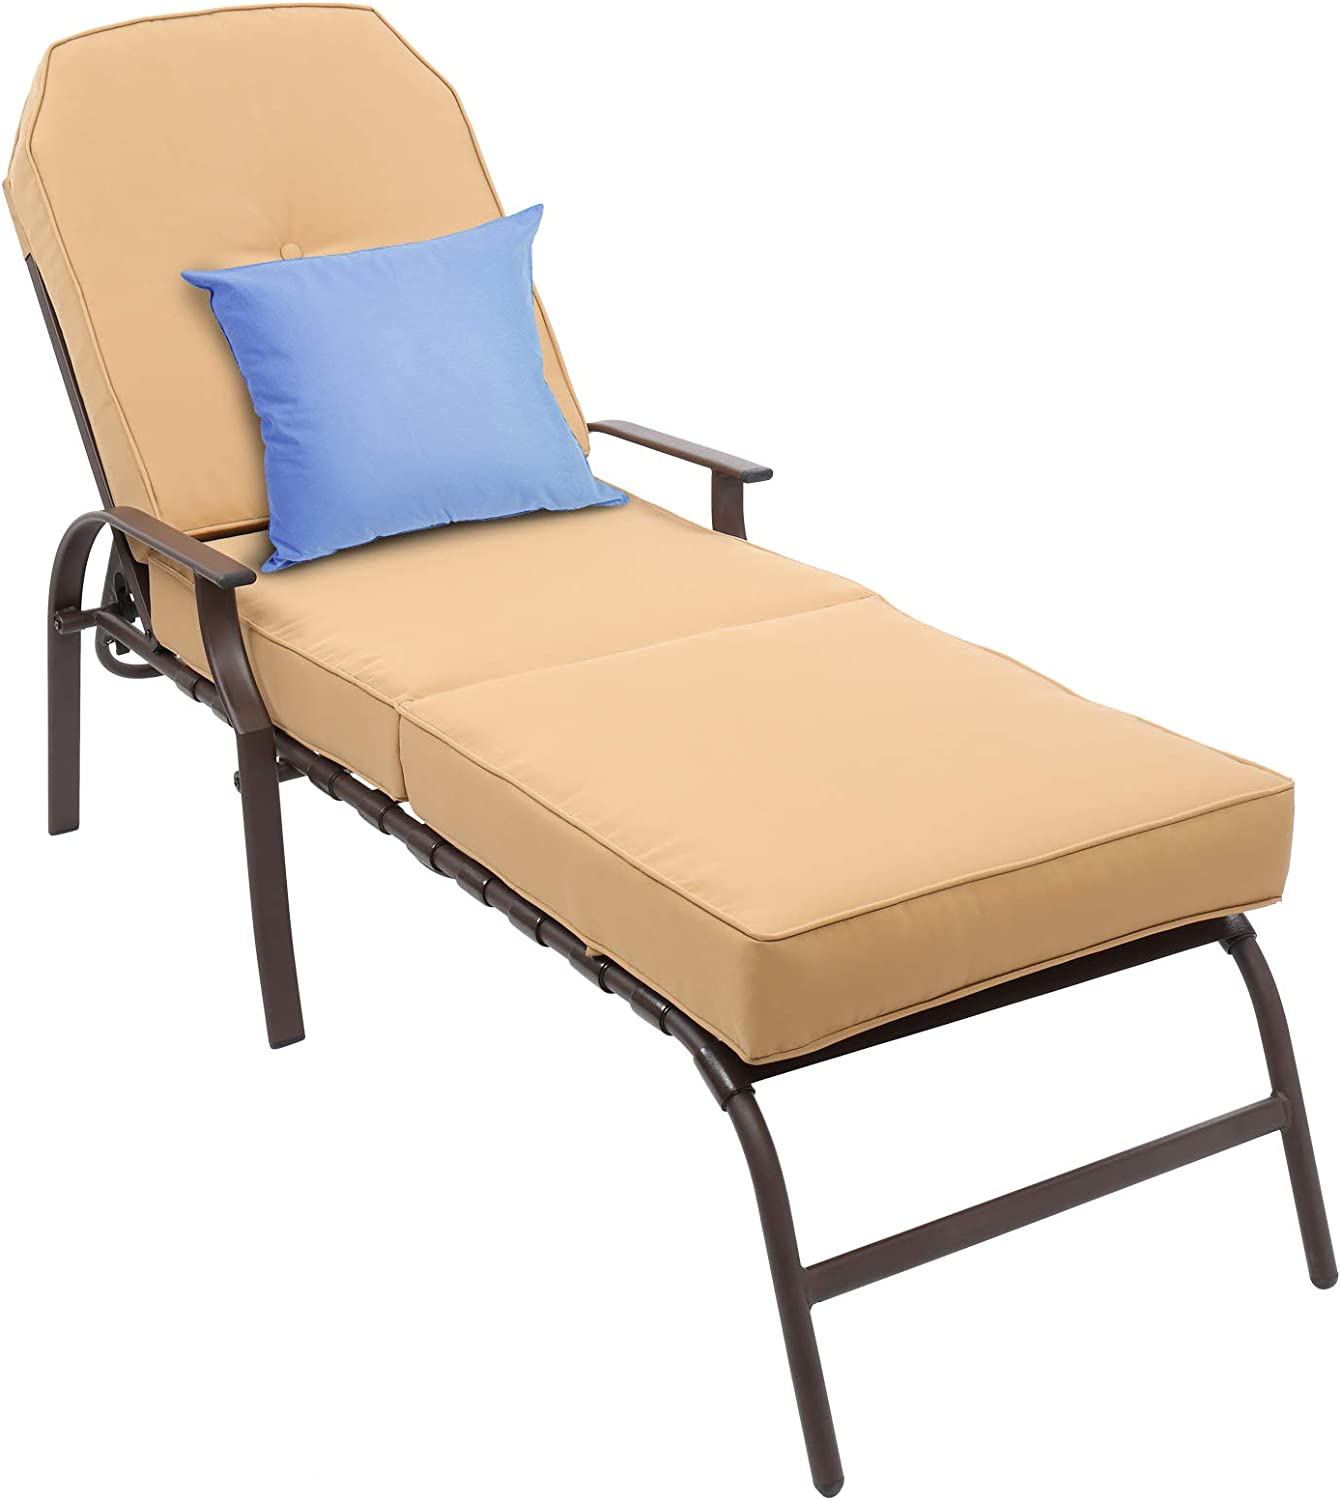 VINGLI Upgraded Patio Metal Chaise Lounge Chairs, Adjustable 5 Positions Steel Chairs with UV-Resistant Cushions for Pool, Yard, Balcony, Lawn